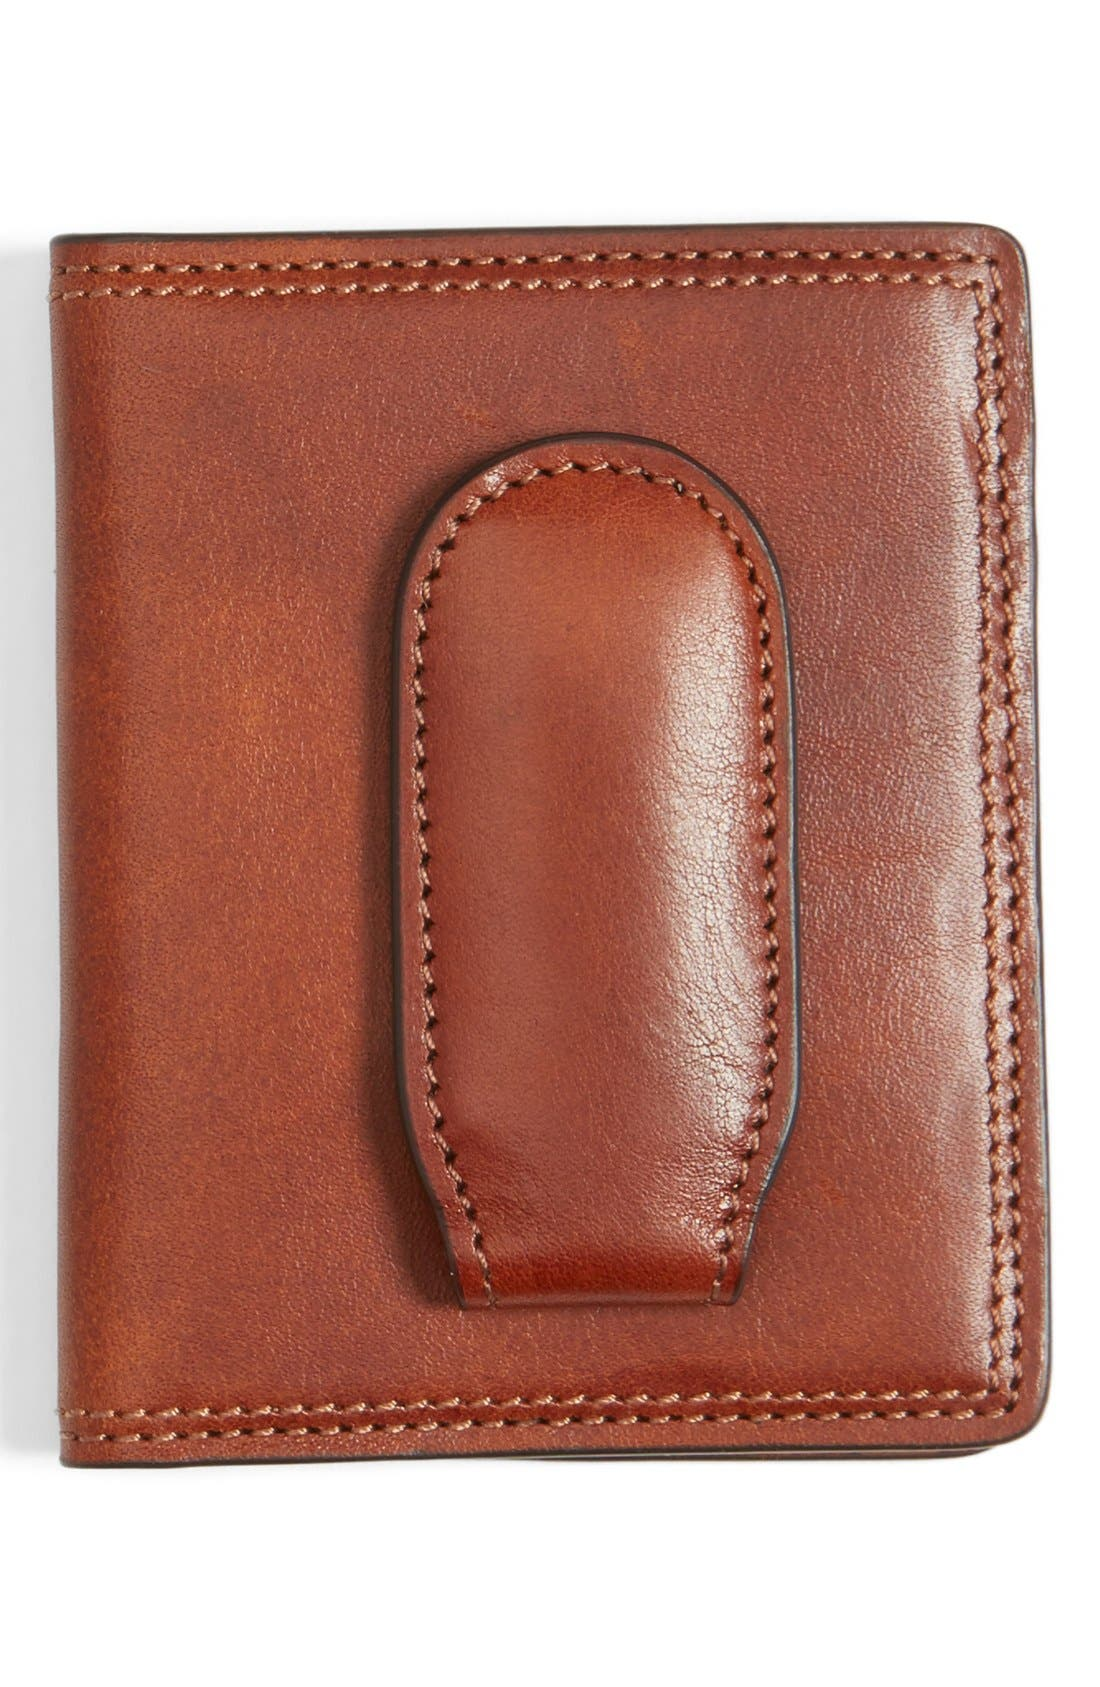 Leather Front Pocket Money Clip Wallet,                             Main thumbnail 1, color,                             Amber